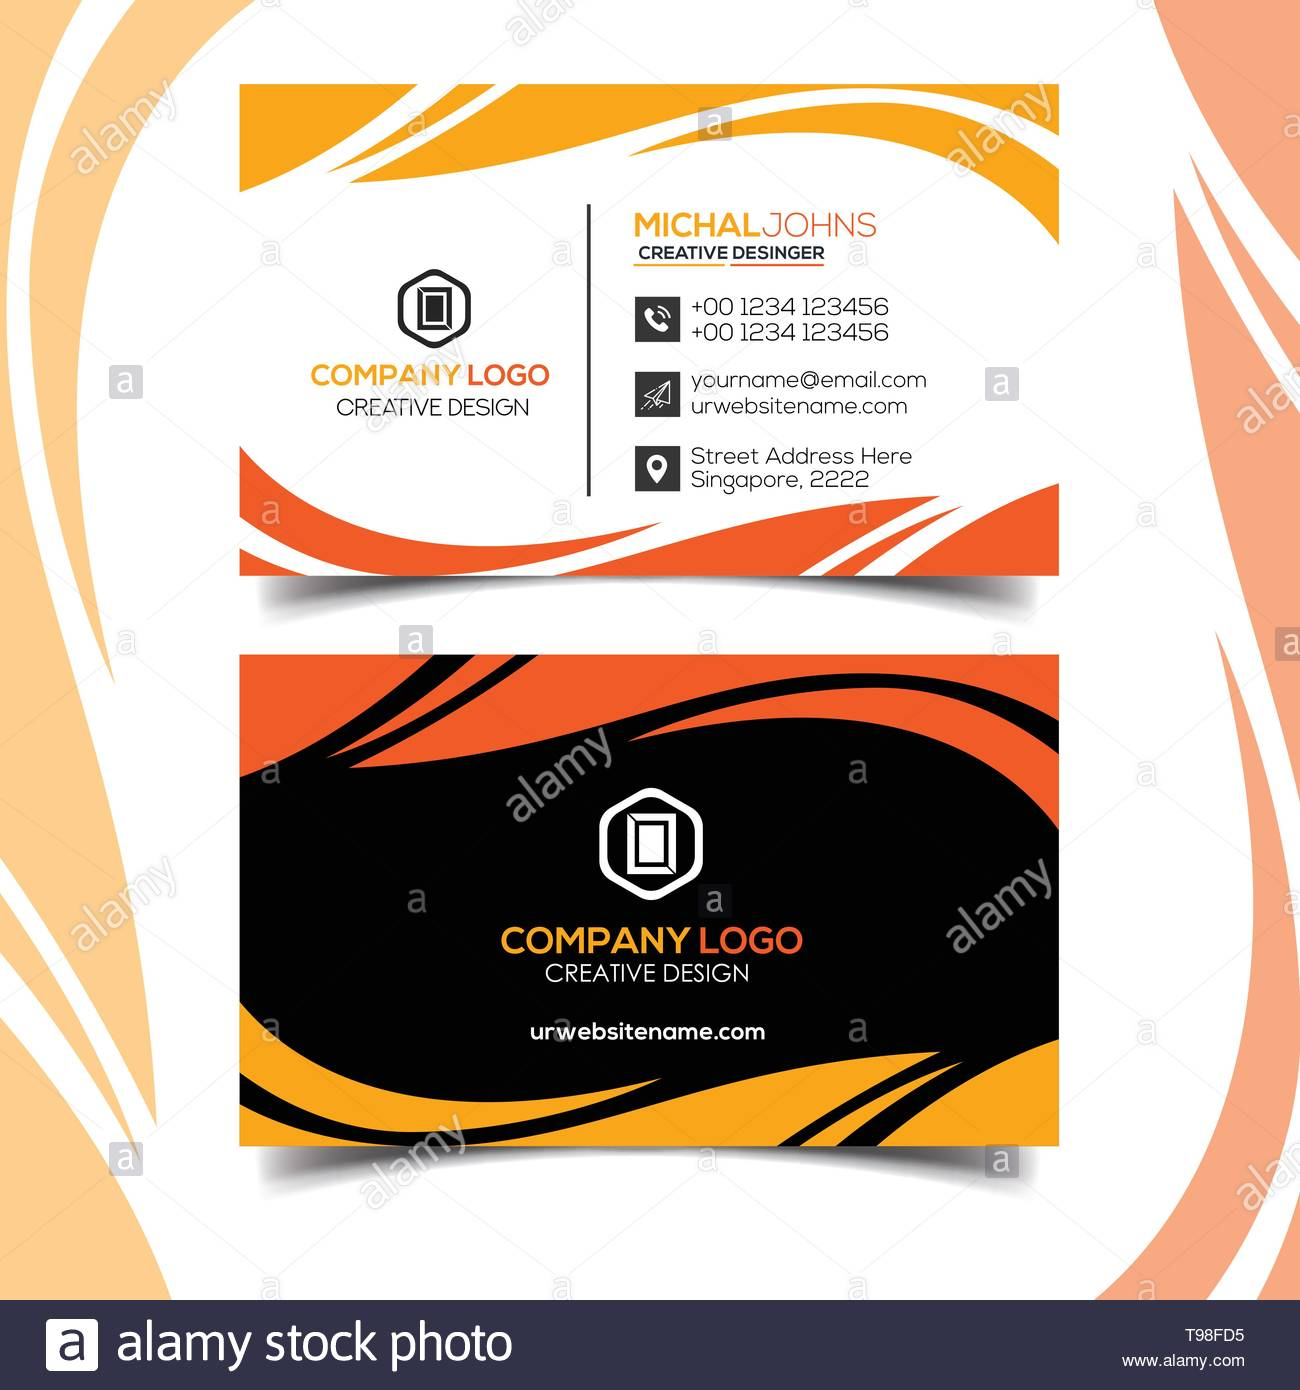 Profeesional Business Card Design Ornage Color - Stock Image